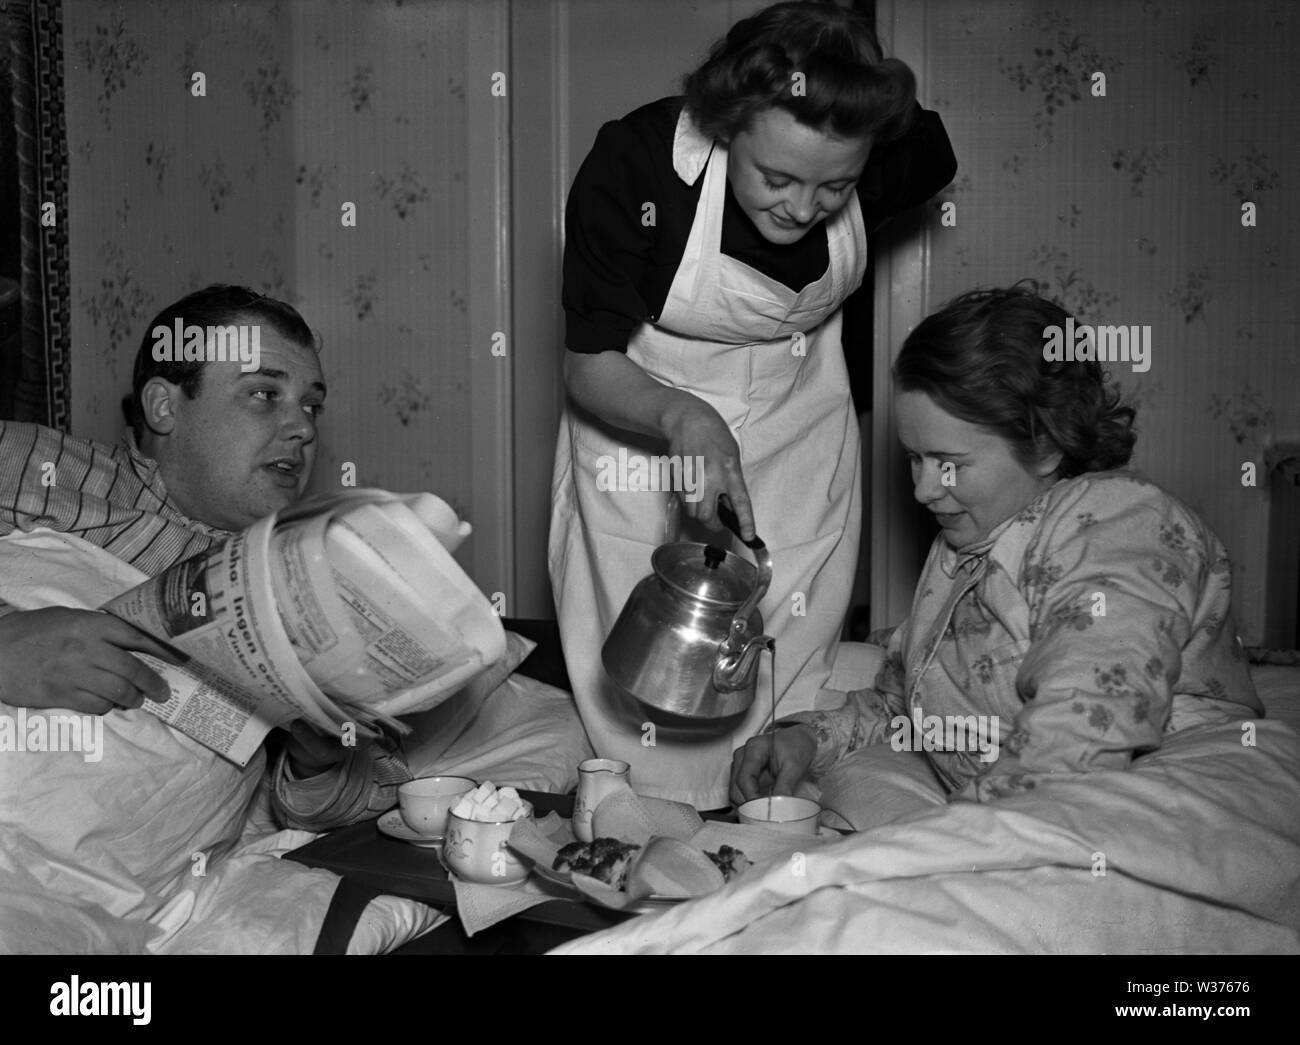 Living in the 1940s. A young woman working as a maid is serving morning coffee to mr and mrs while they still are in bed. She is neatly dressed in a white apron.   Sweden 1940. Kristoffersson ref 55-8 - Stock Image